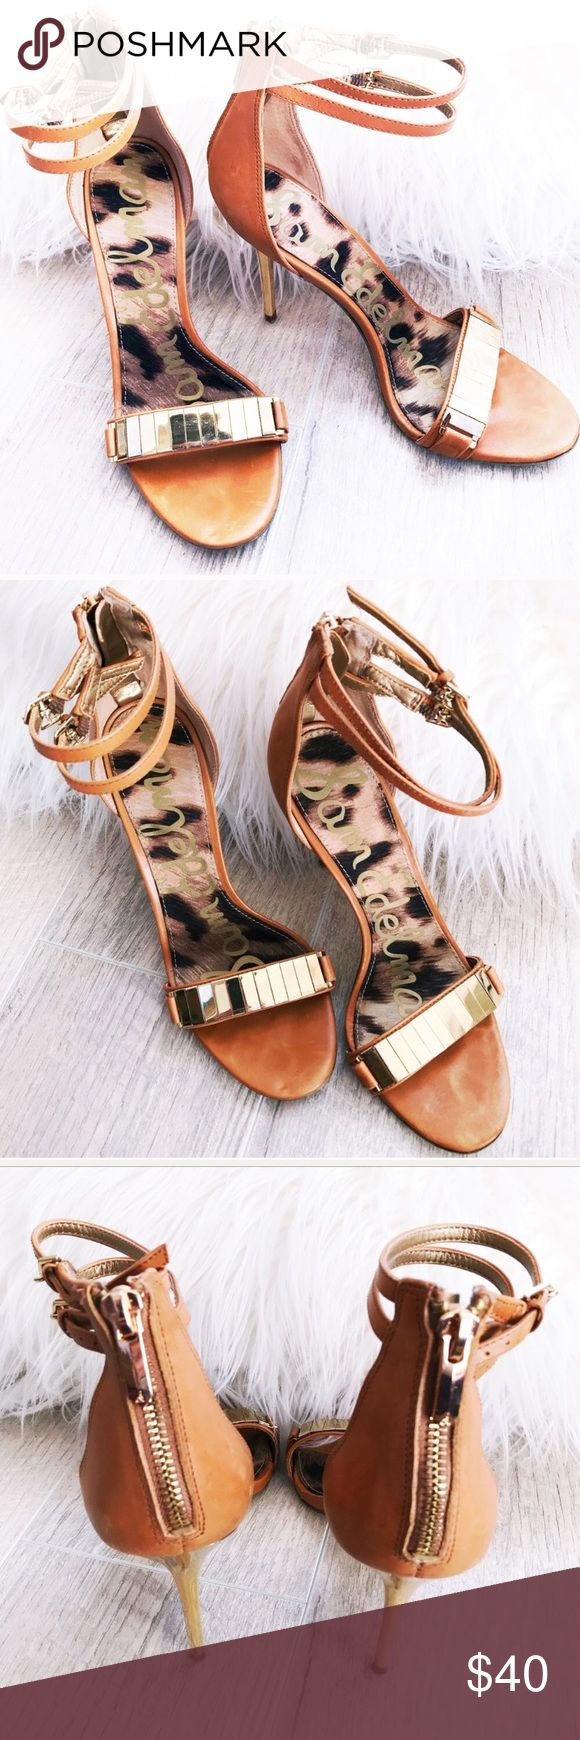 Sam Edelman Gold and Tan Strappy Heels These heels are gorgeous and in gently used condition as shown. Only selling because they do not fit. Fit is true to size. Wish they worked for me because they are beautiful and work with so many outfits! Sam Edelman Shoes Heels